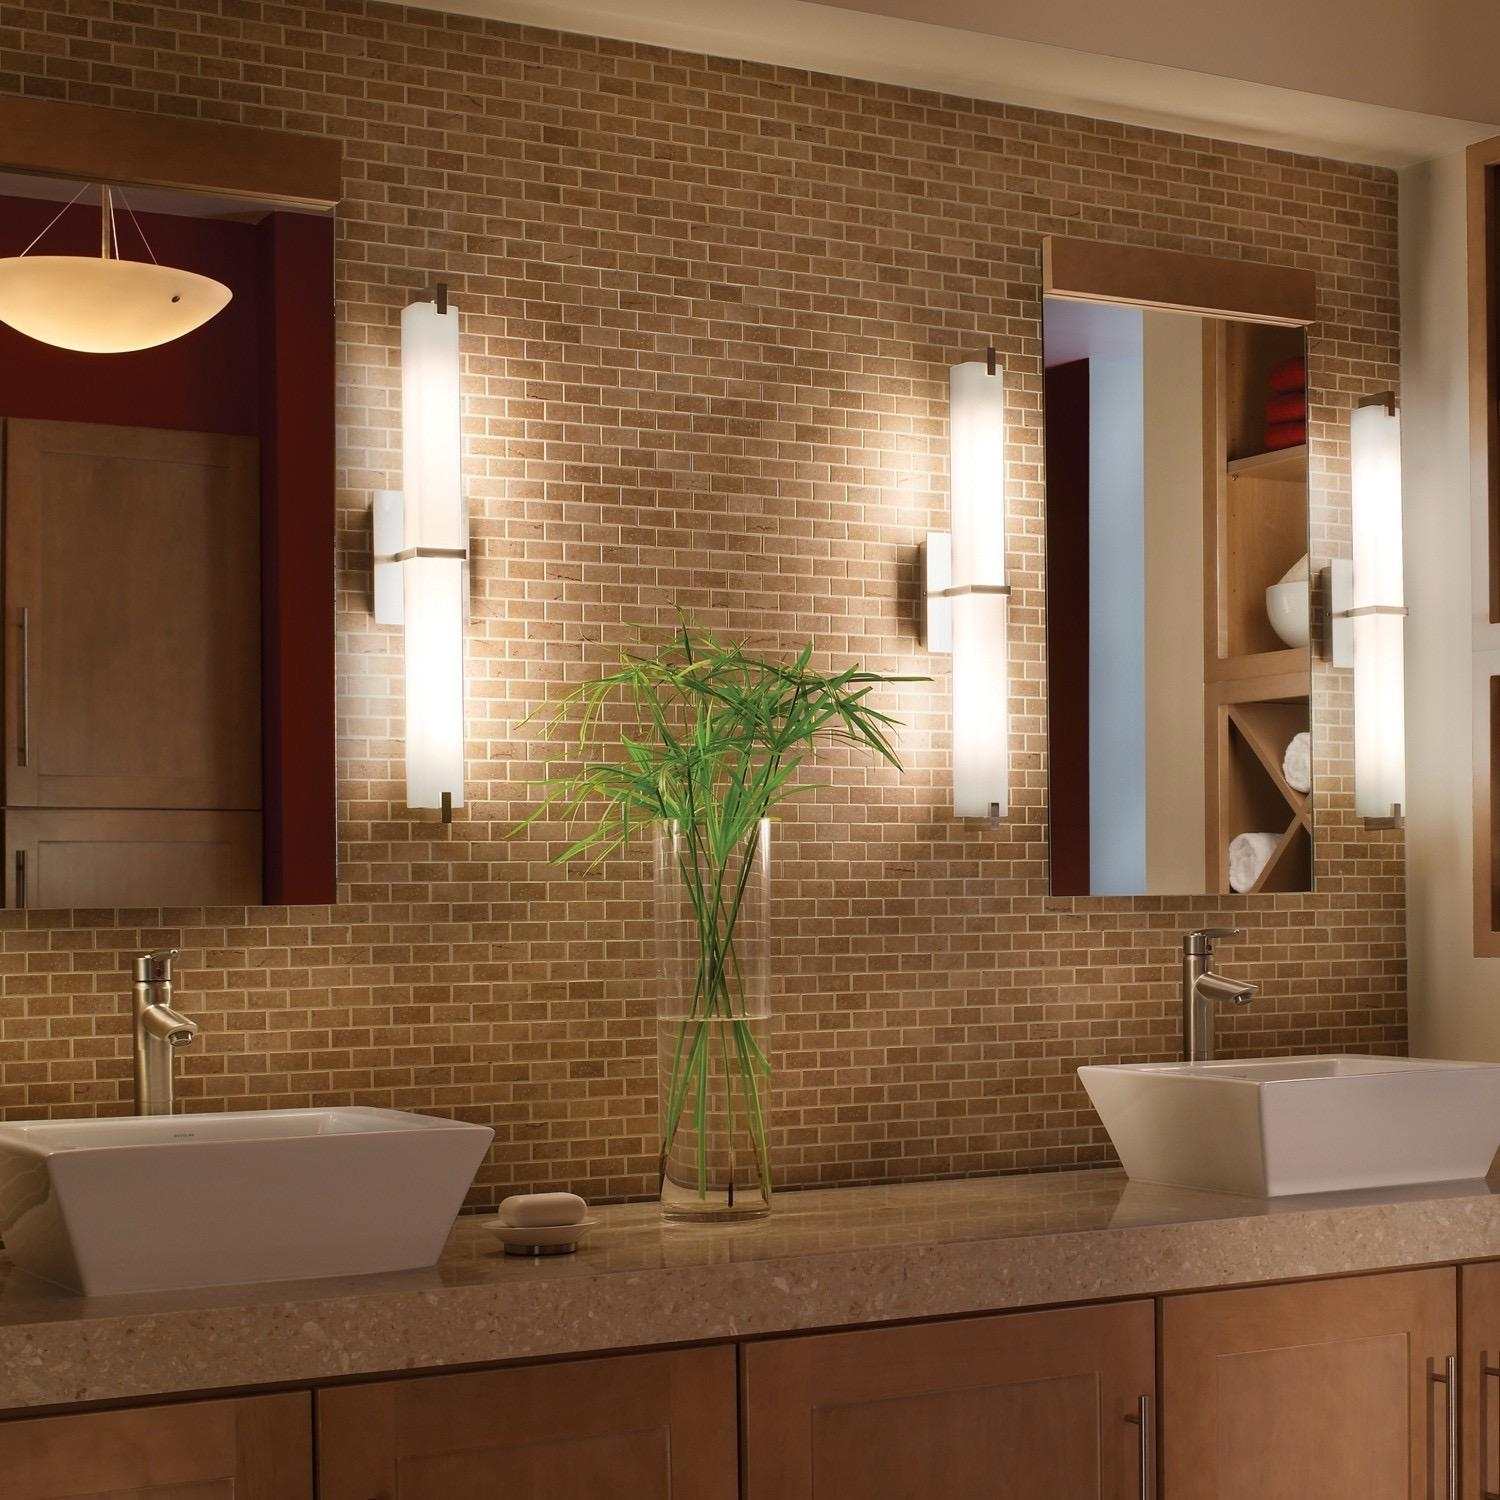 Bathroom Cabinets : Cozy Inspiration Bathroom Lights And Mirrors Within Bathroom Lights And Mirrors (Image 4 of 20)